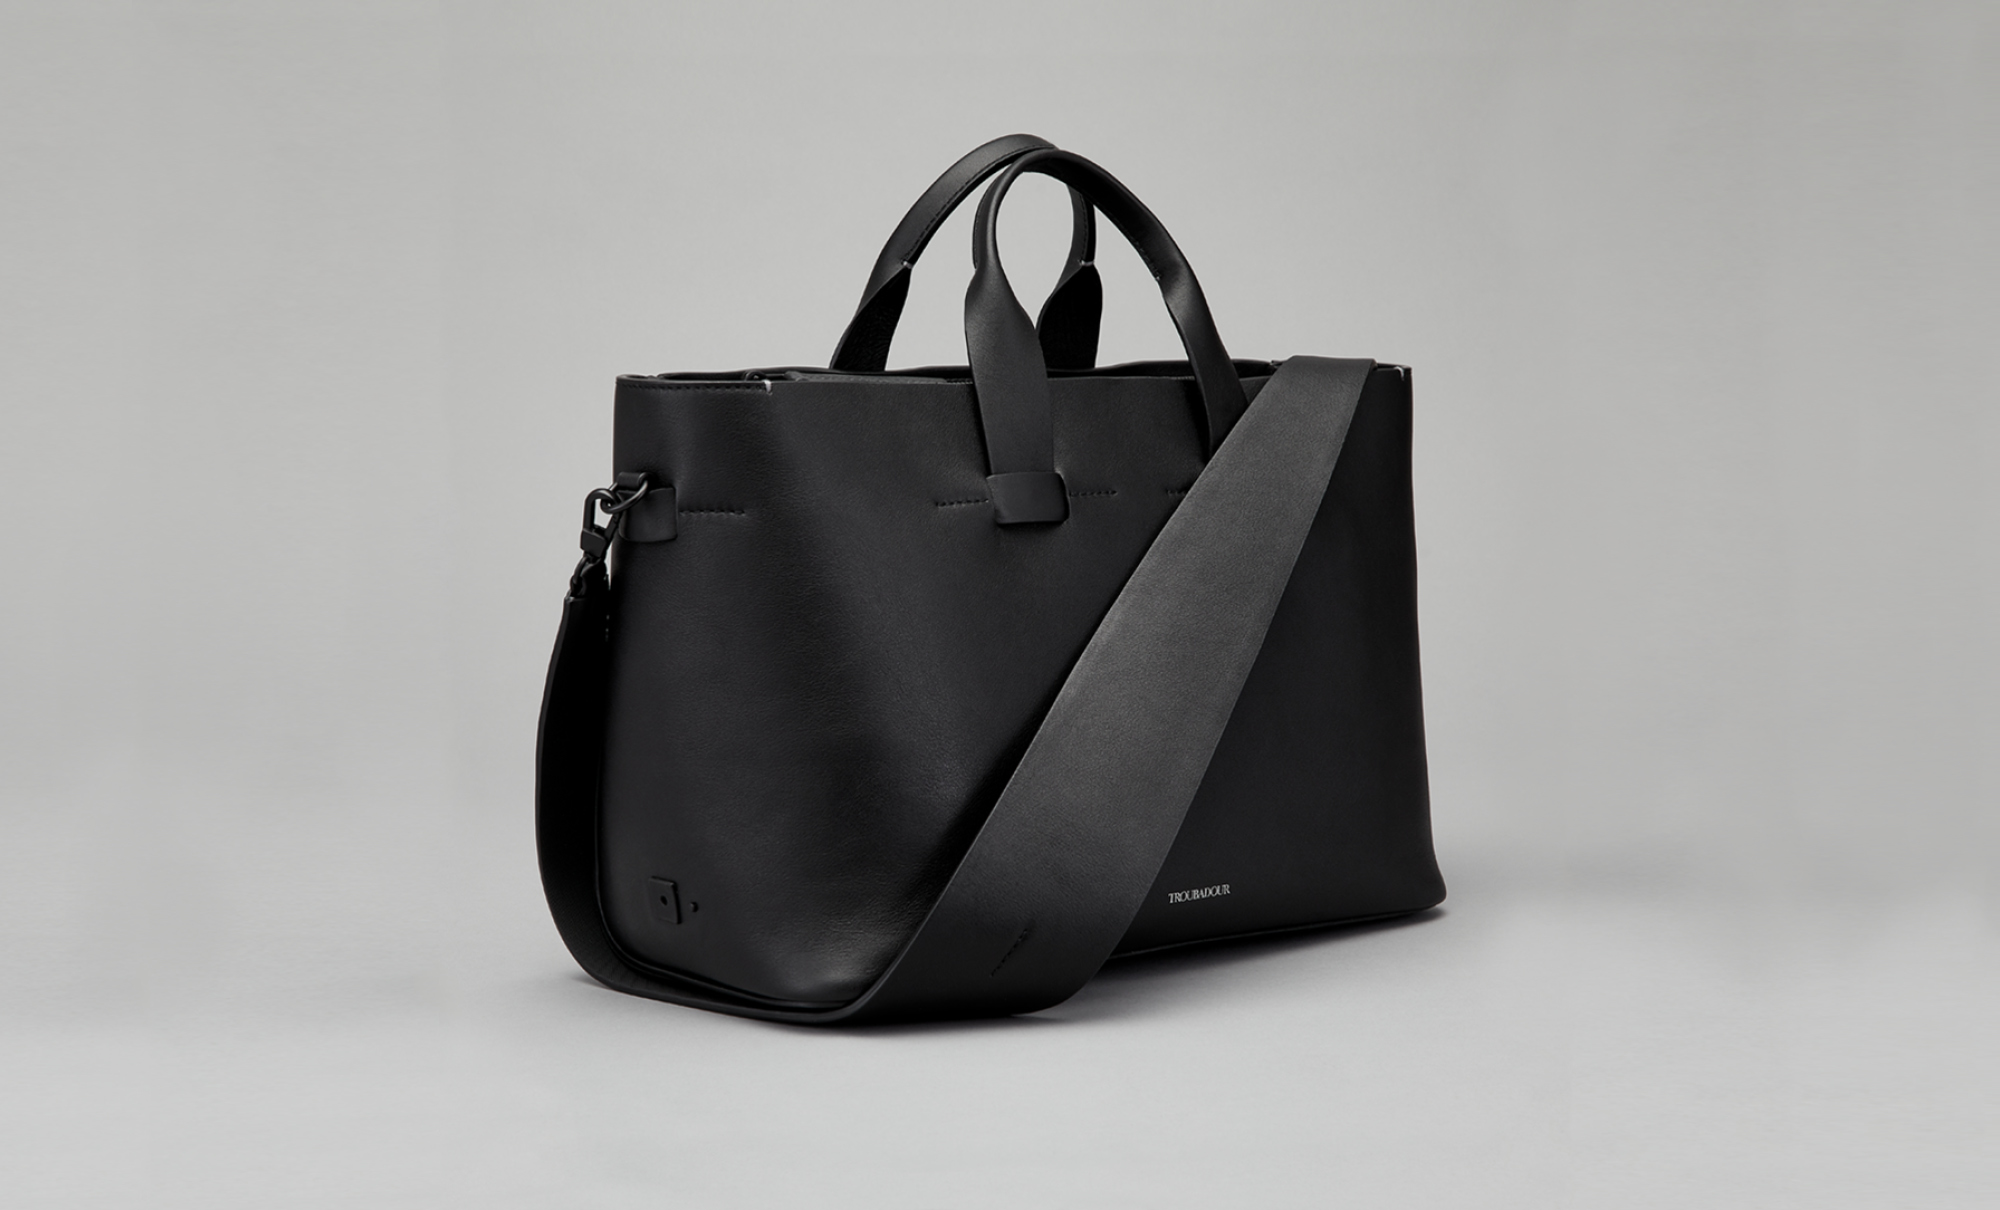 Troubadour women's collection Zola shoulder bag in black, £535